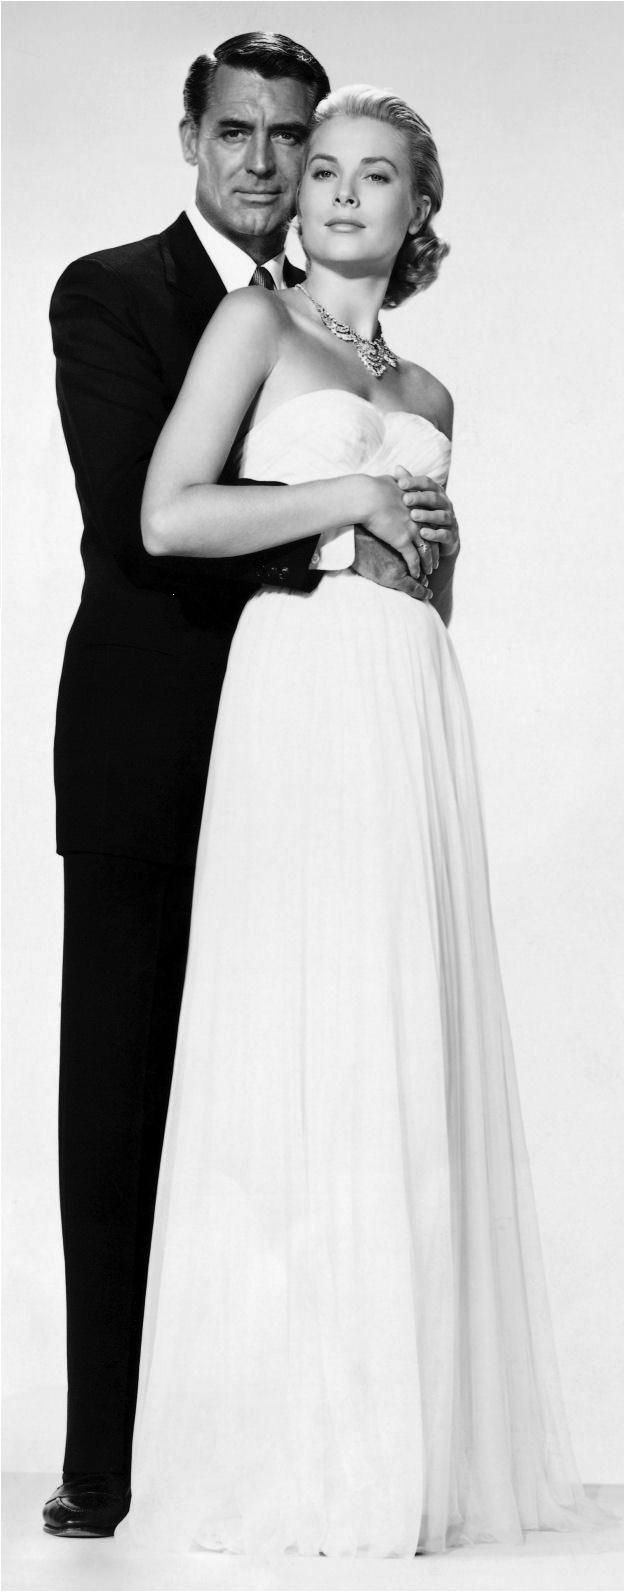 Cary Grant & Grace Kelly in To Catch a Thief, 1955